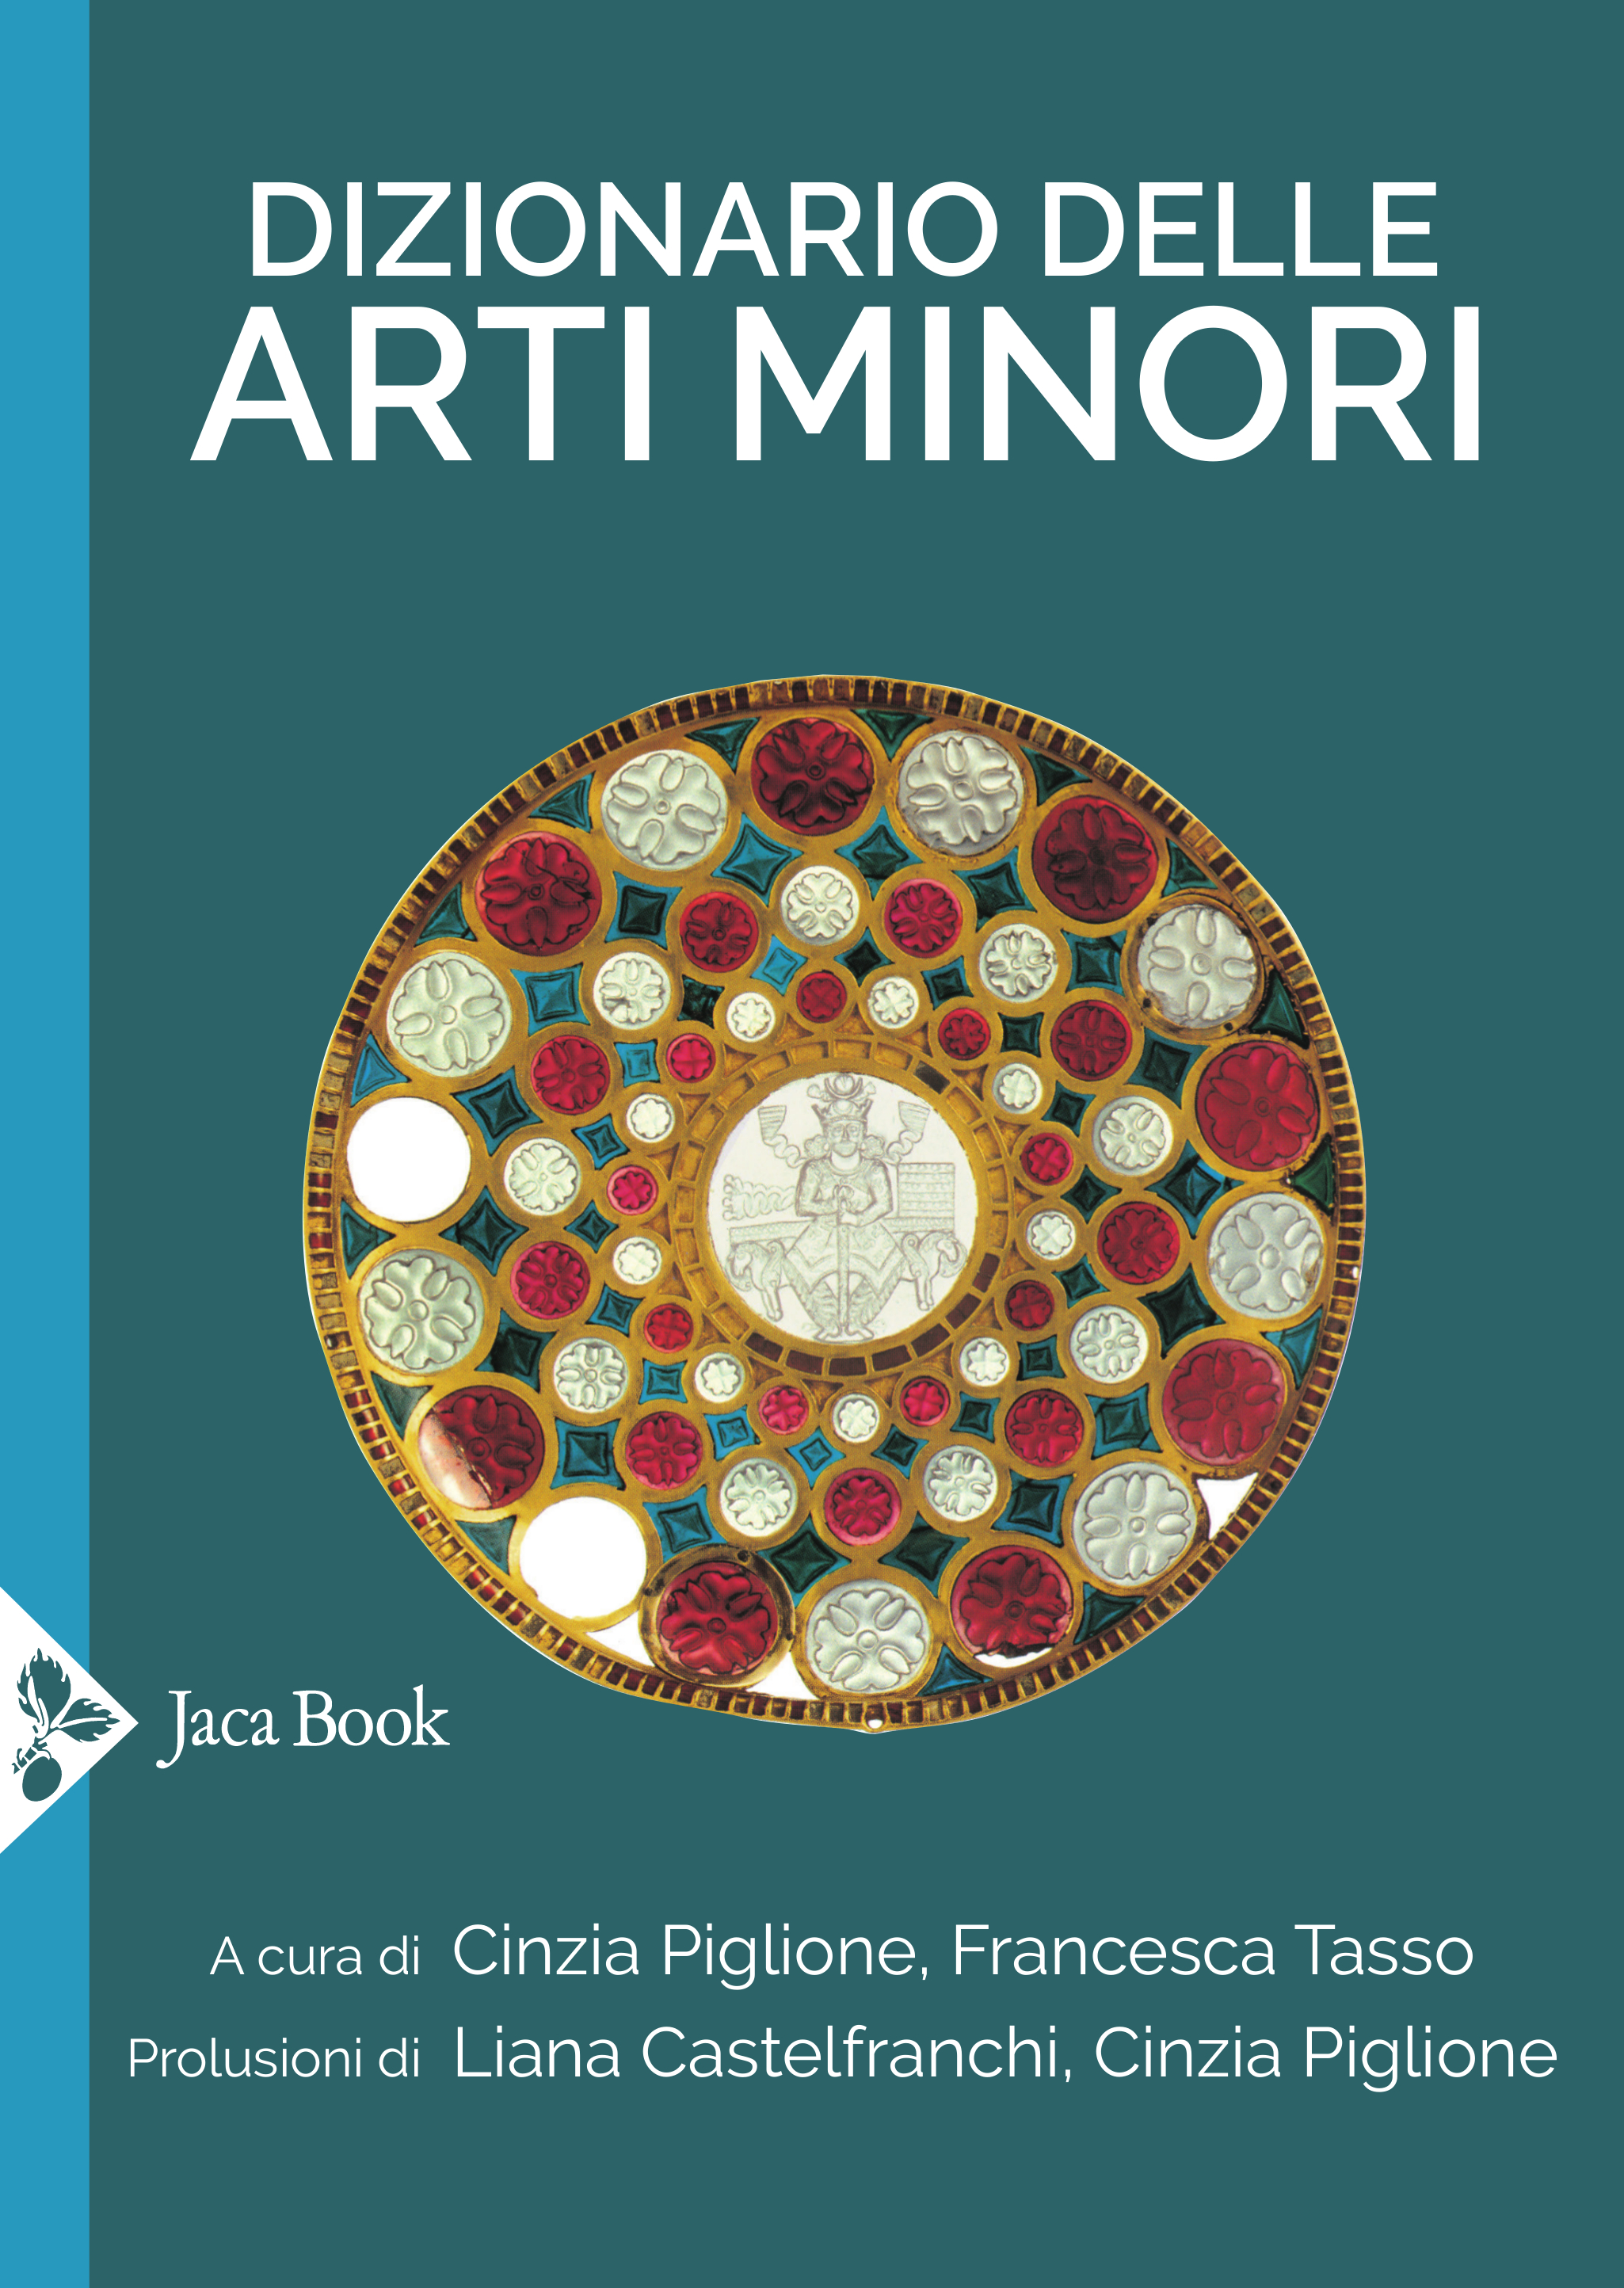 DICTIONARY OF MINOR ARTS